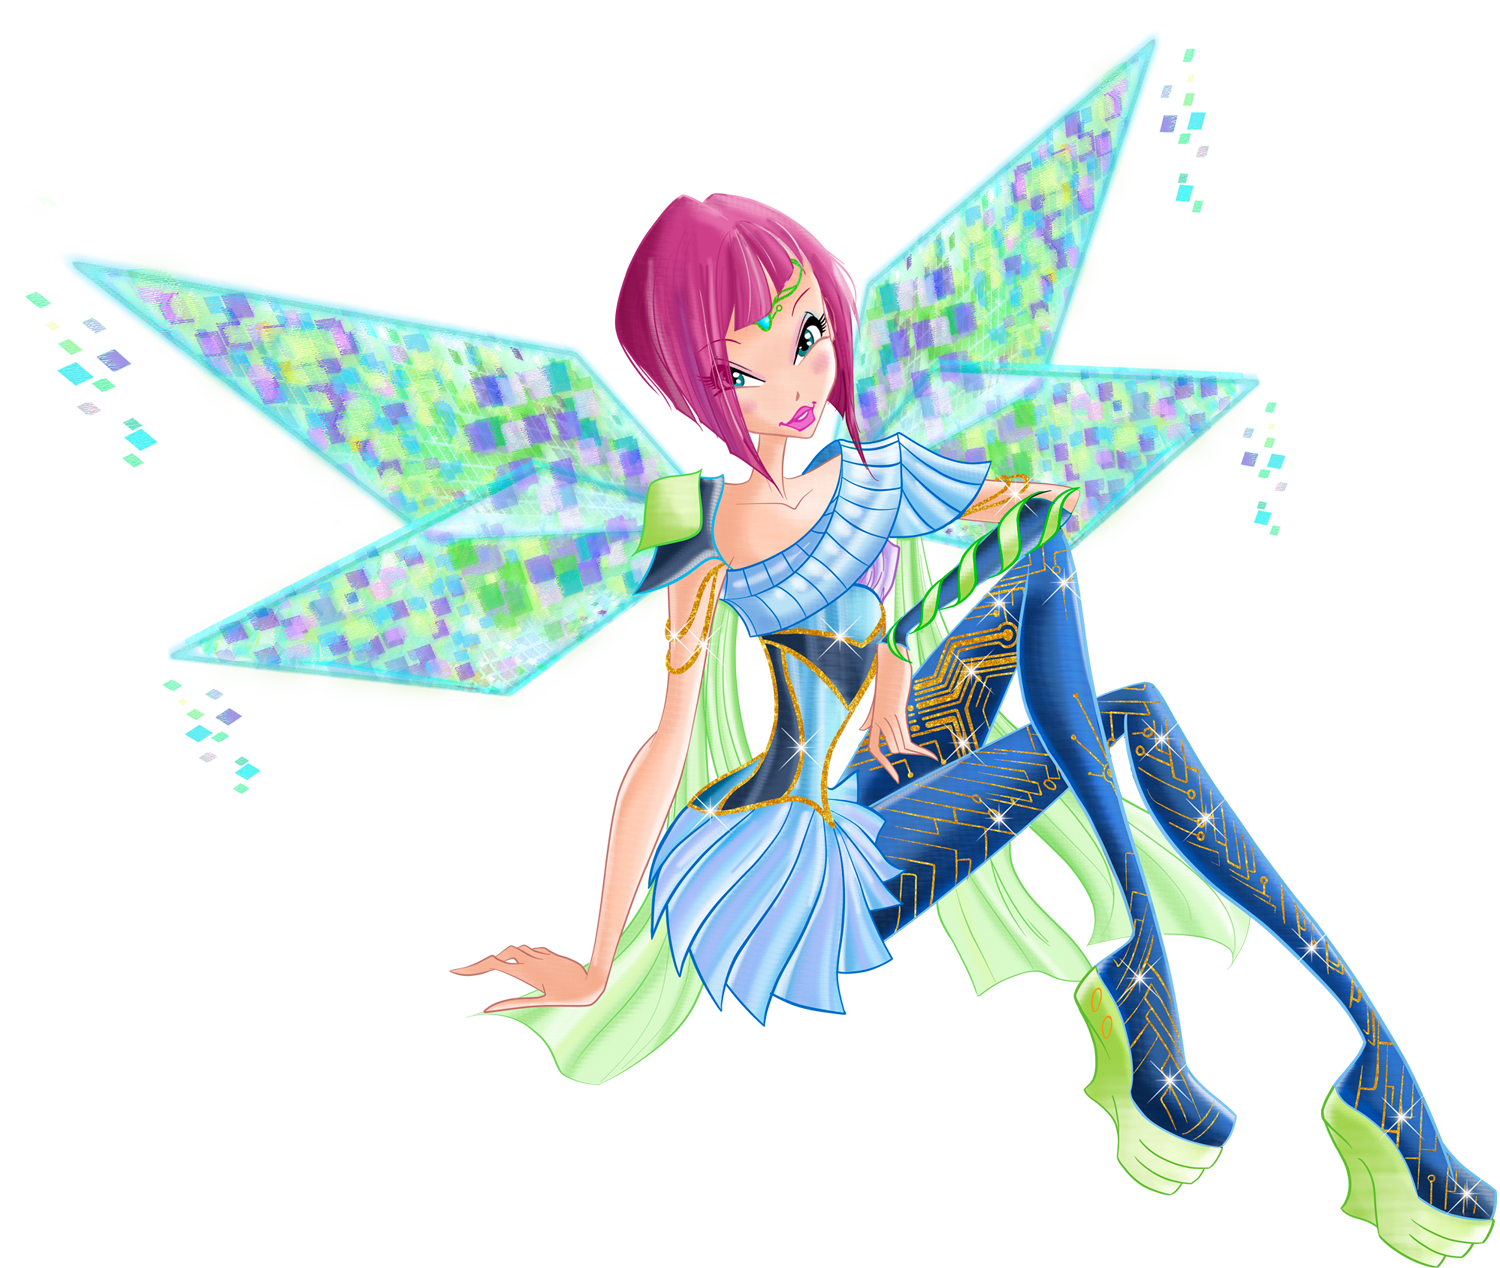 Image winx club tecna bloomix magical girl - Winx magic bloomix ...